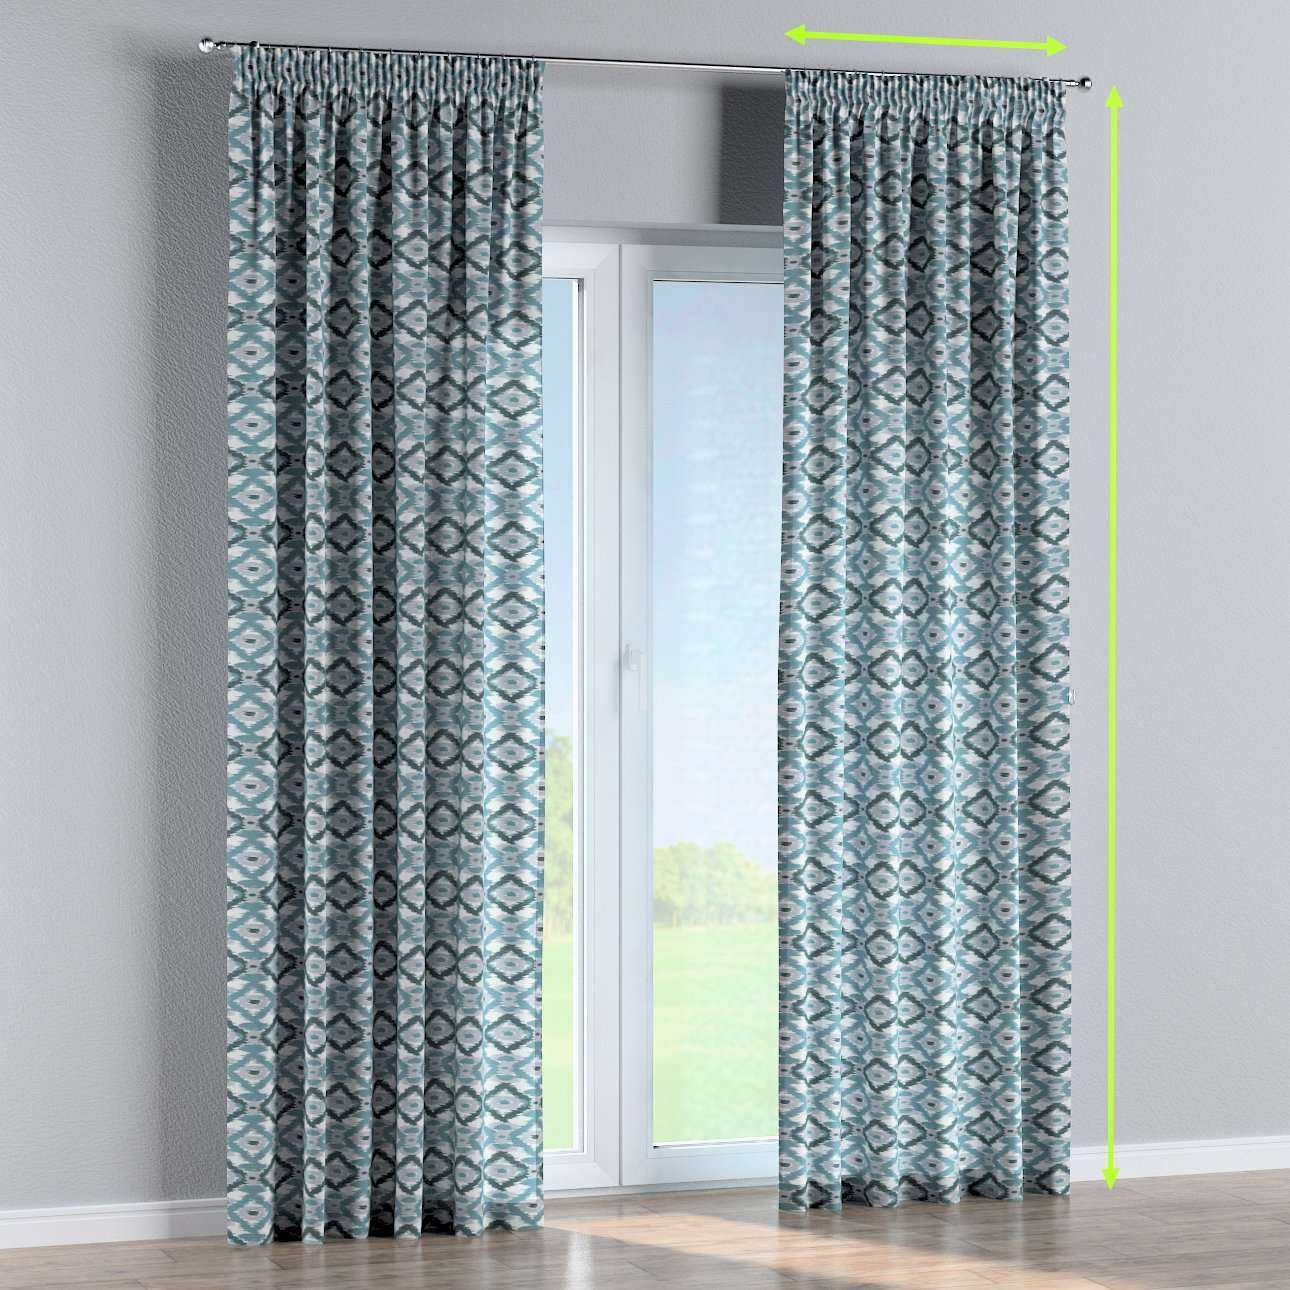 Pencil pleat lined curtains in collection Modern, fabric: 141-90